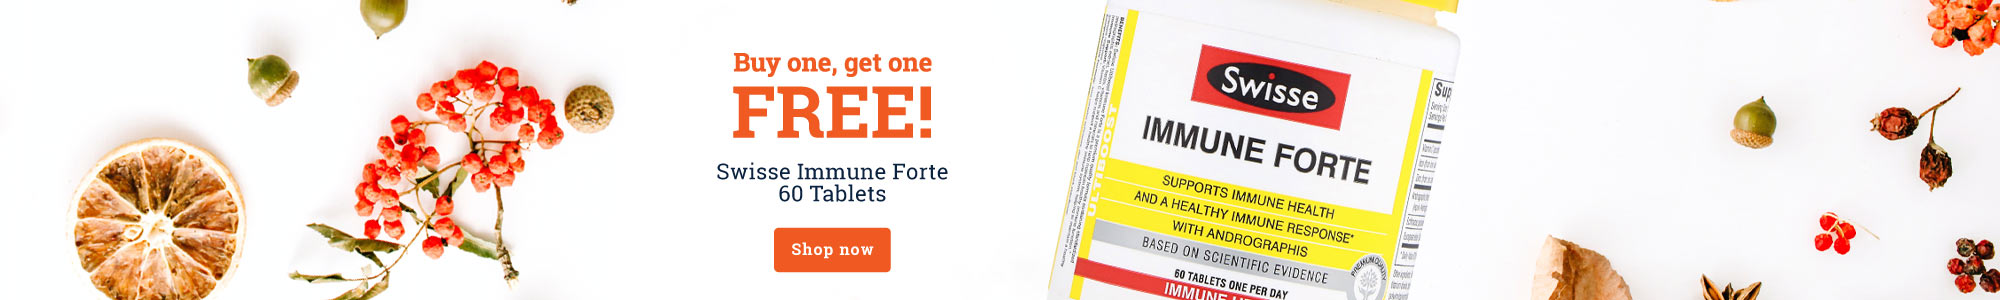 Buy one, get one FREE! Swisse Immune Forte 60 Tablets Shop now